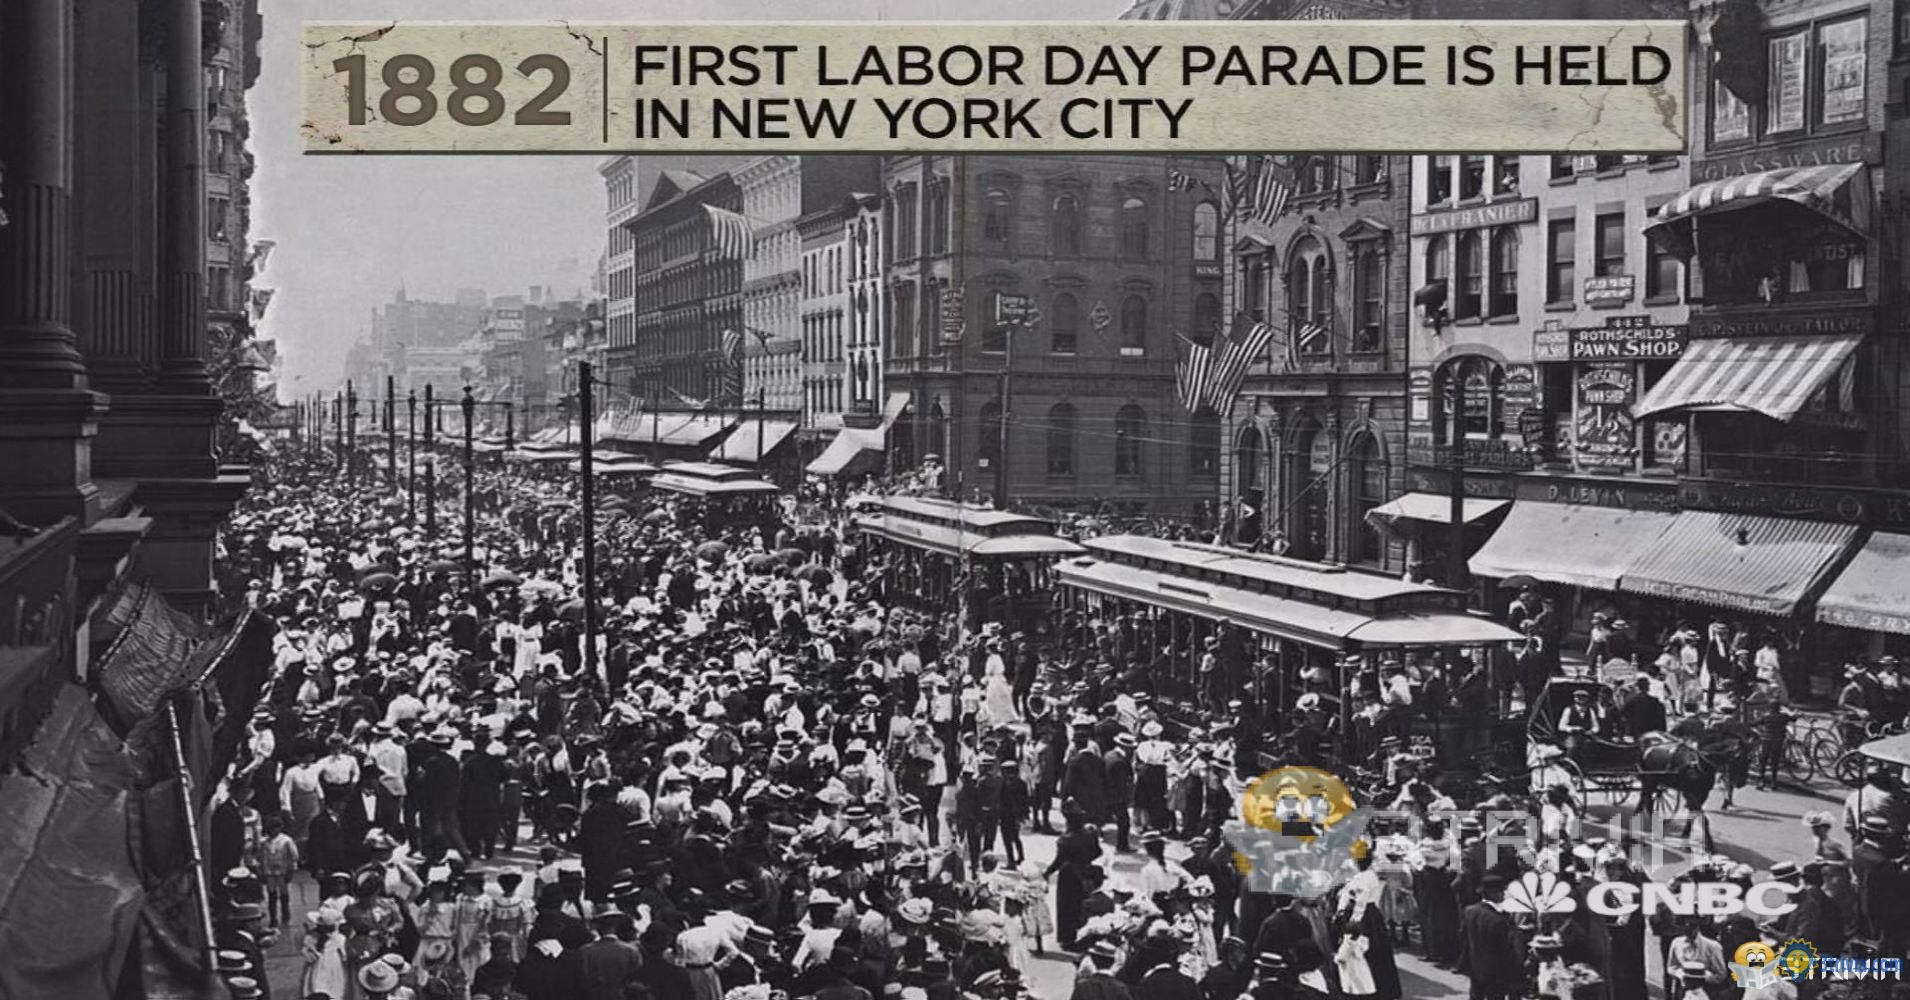 Labor day Trivia:The origin of Labor Day